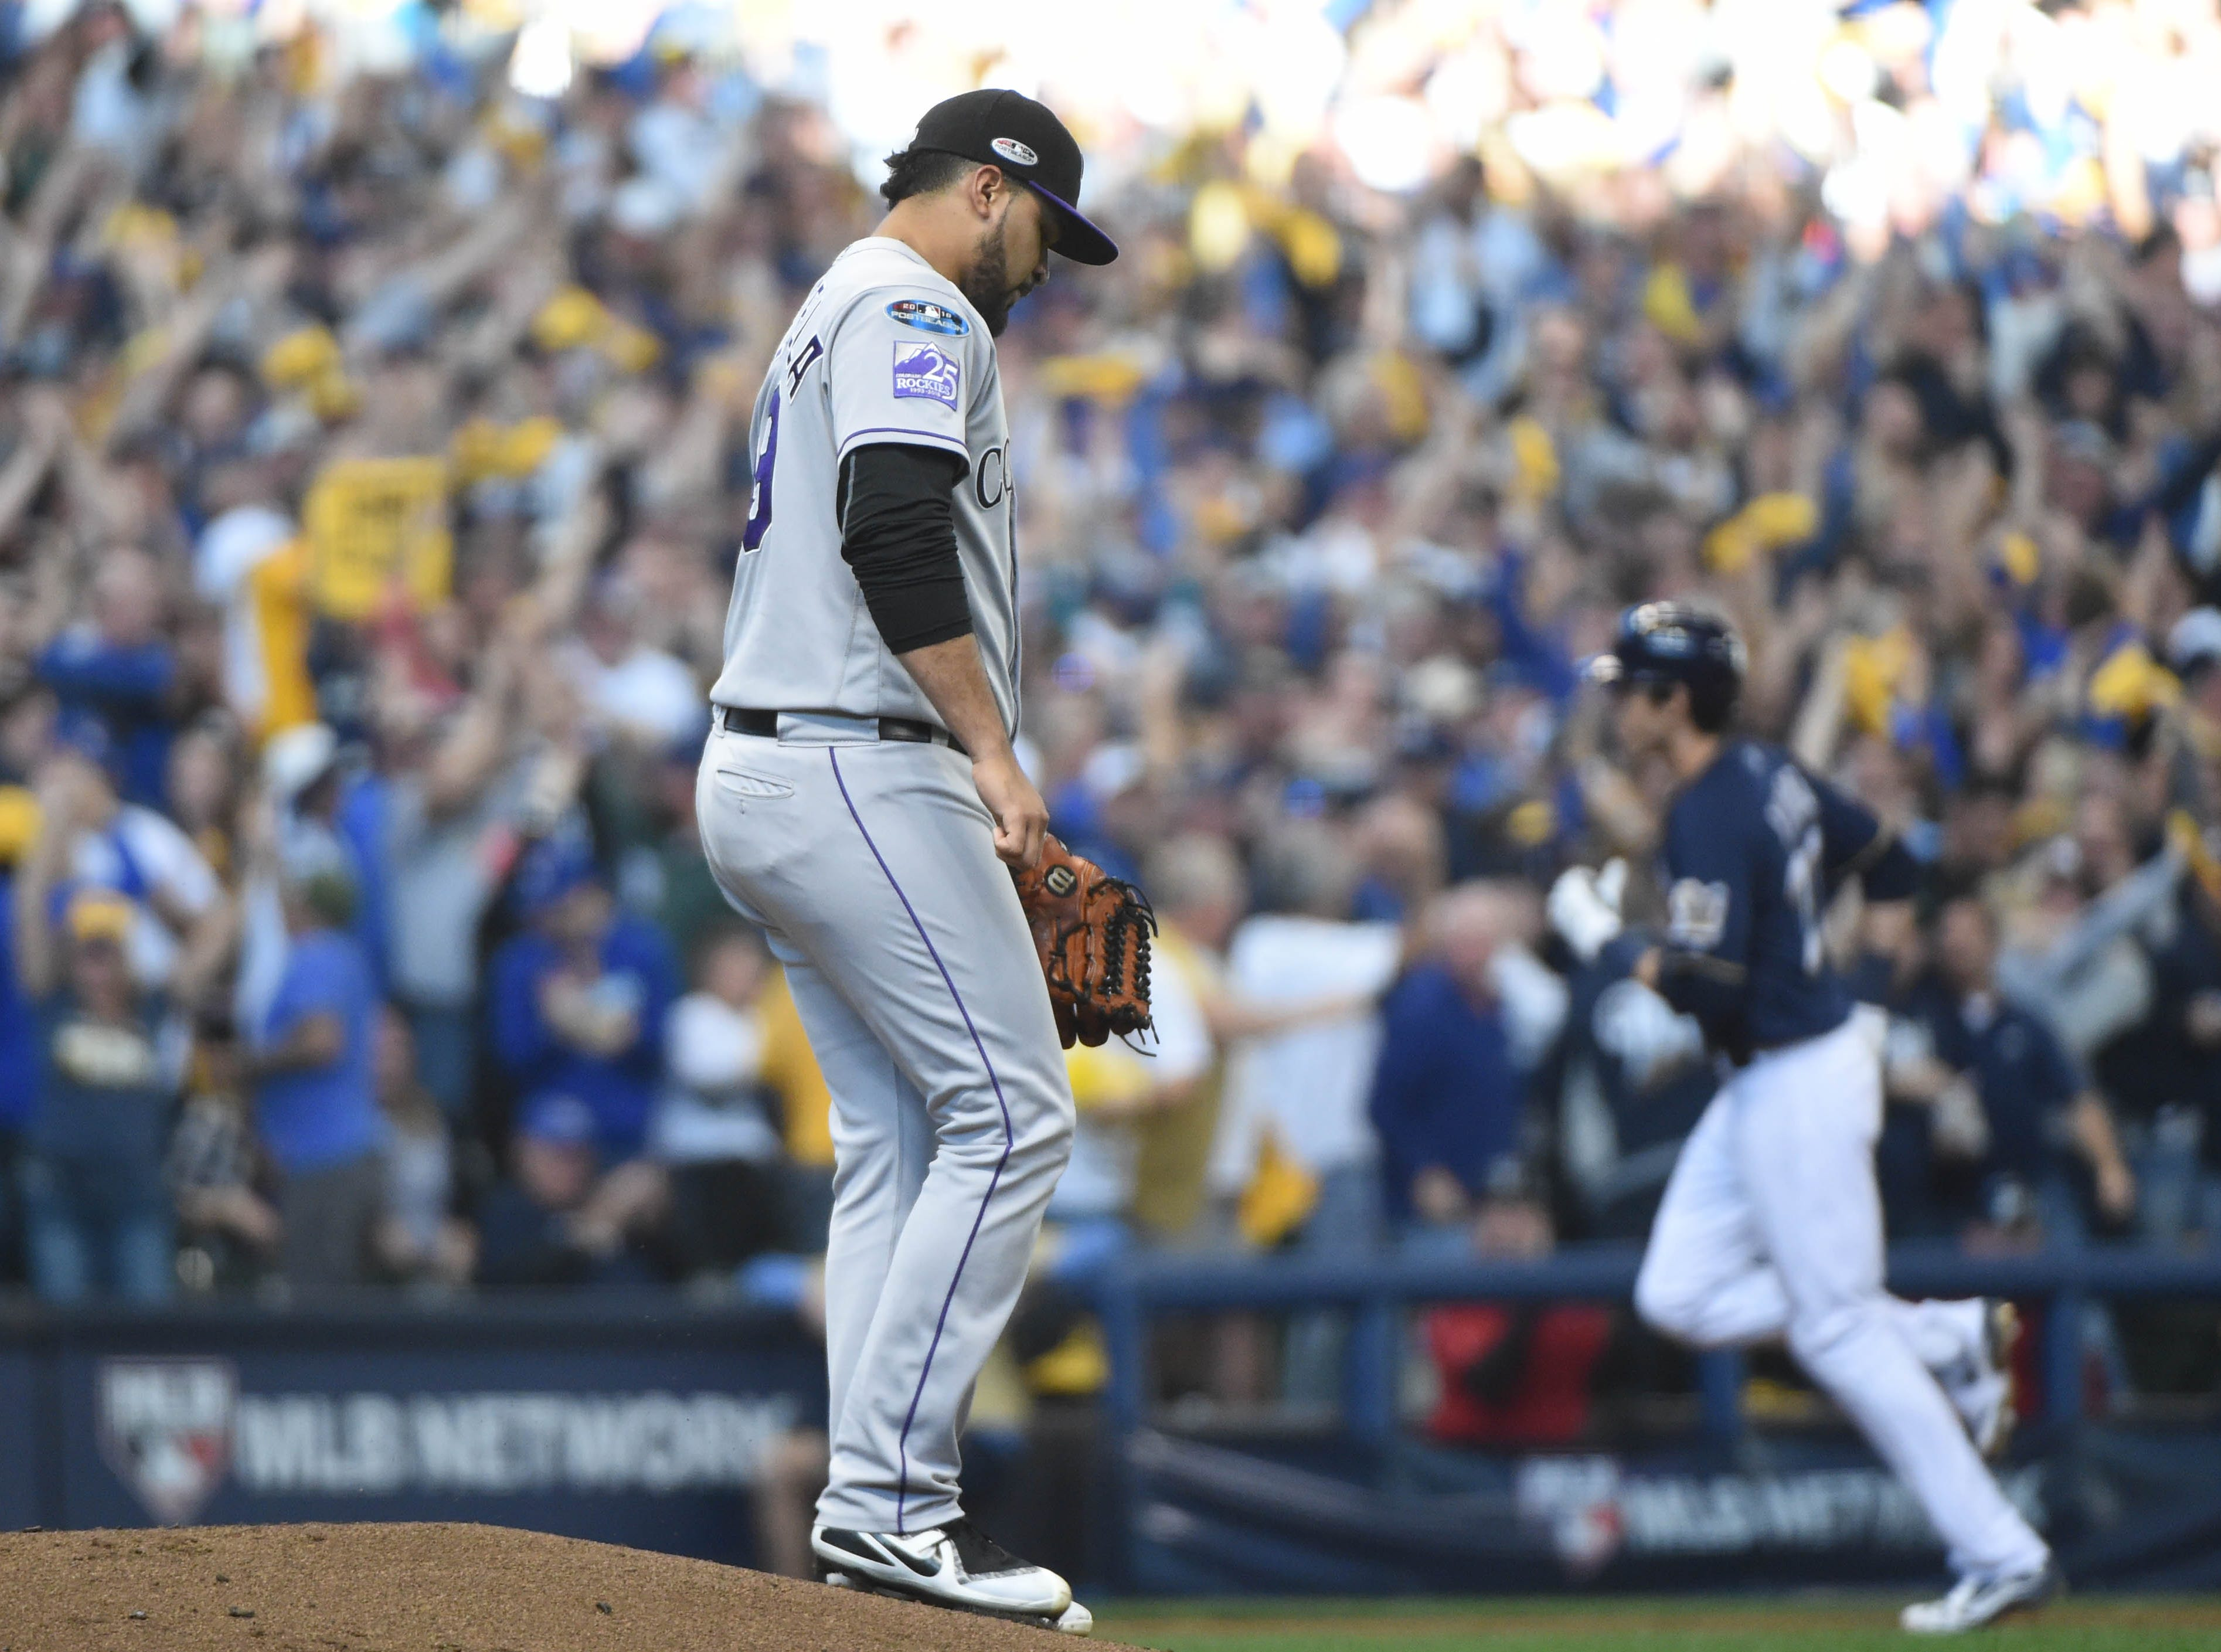 NLDS Game 1: Rockies pitcher Antonio Senzatela reacts after giving up a two-run home run to Christian Yelich in the third inning.